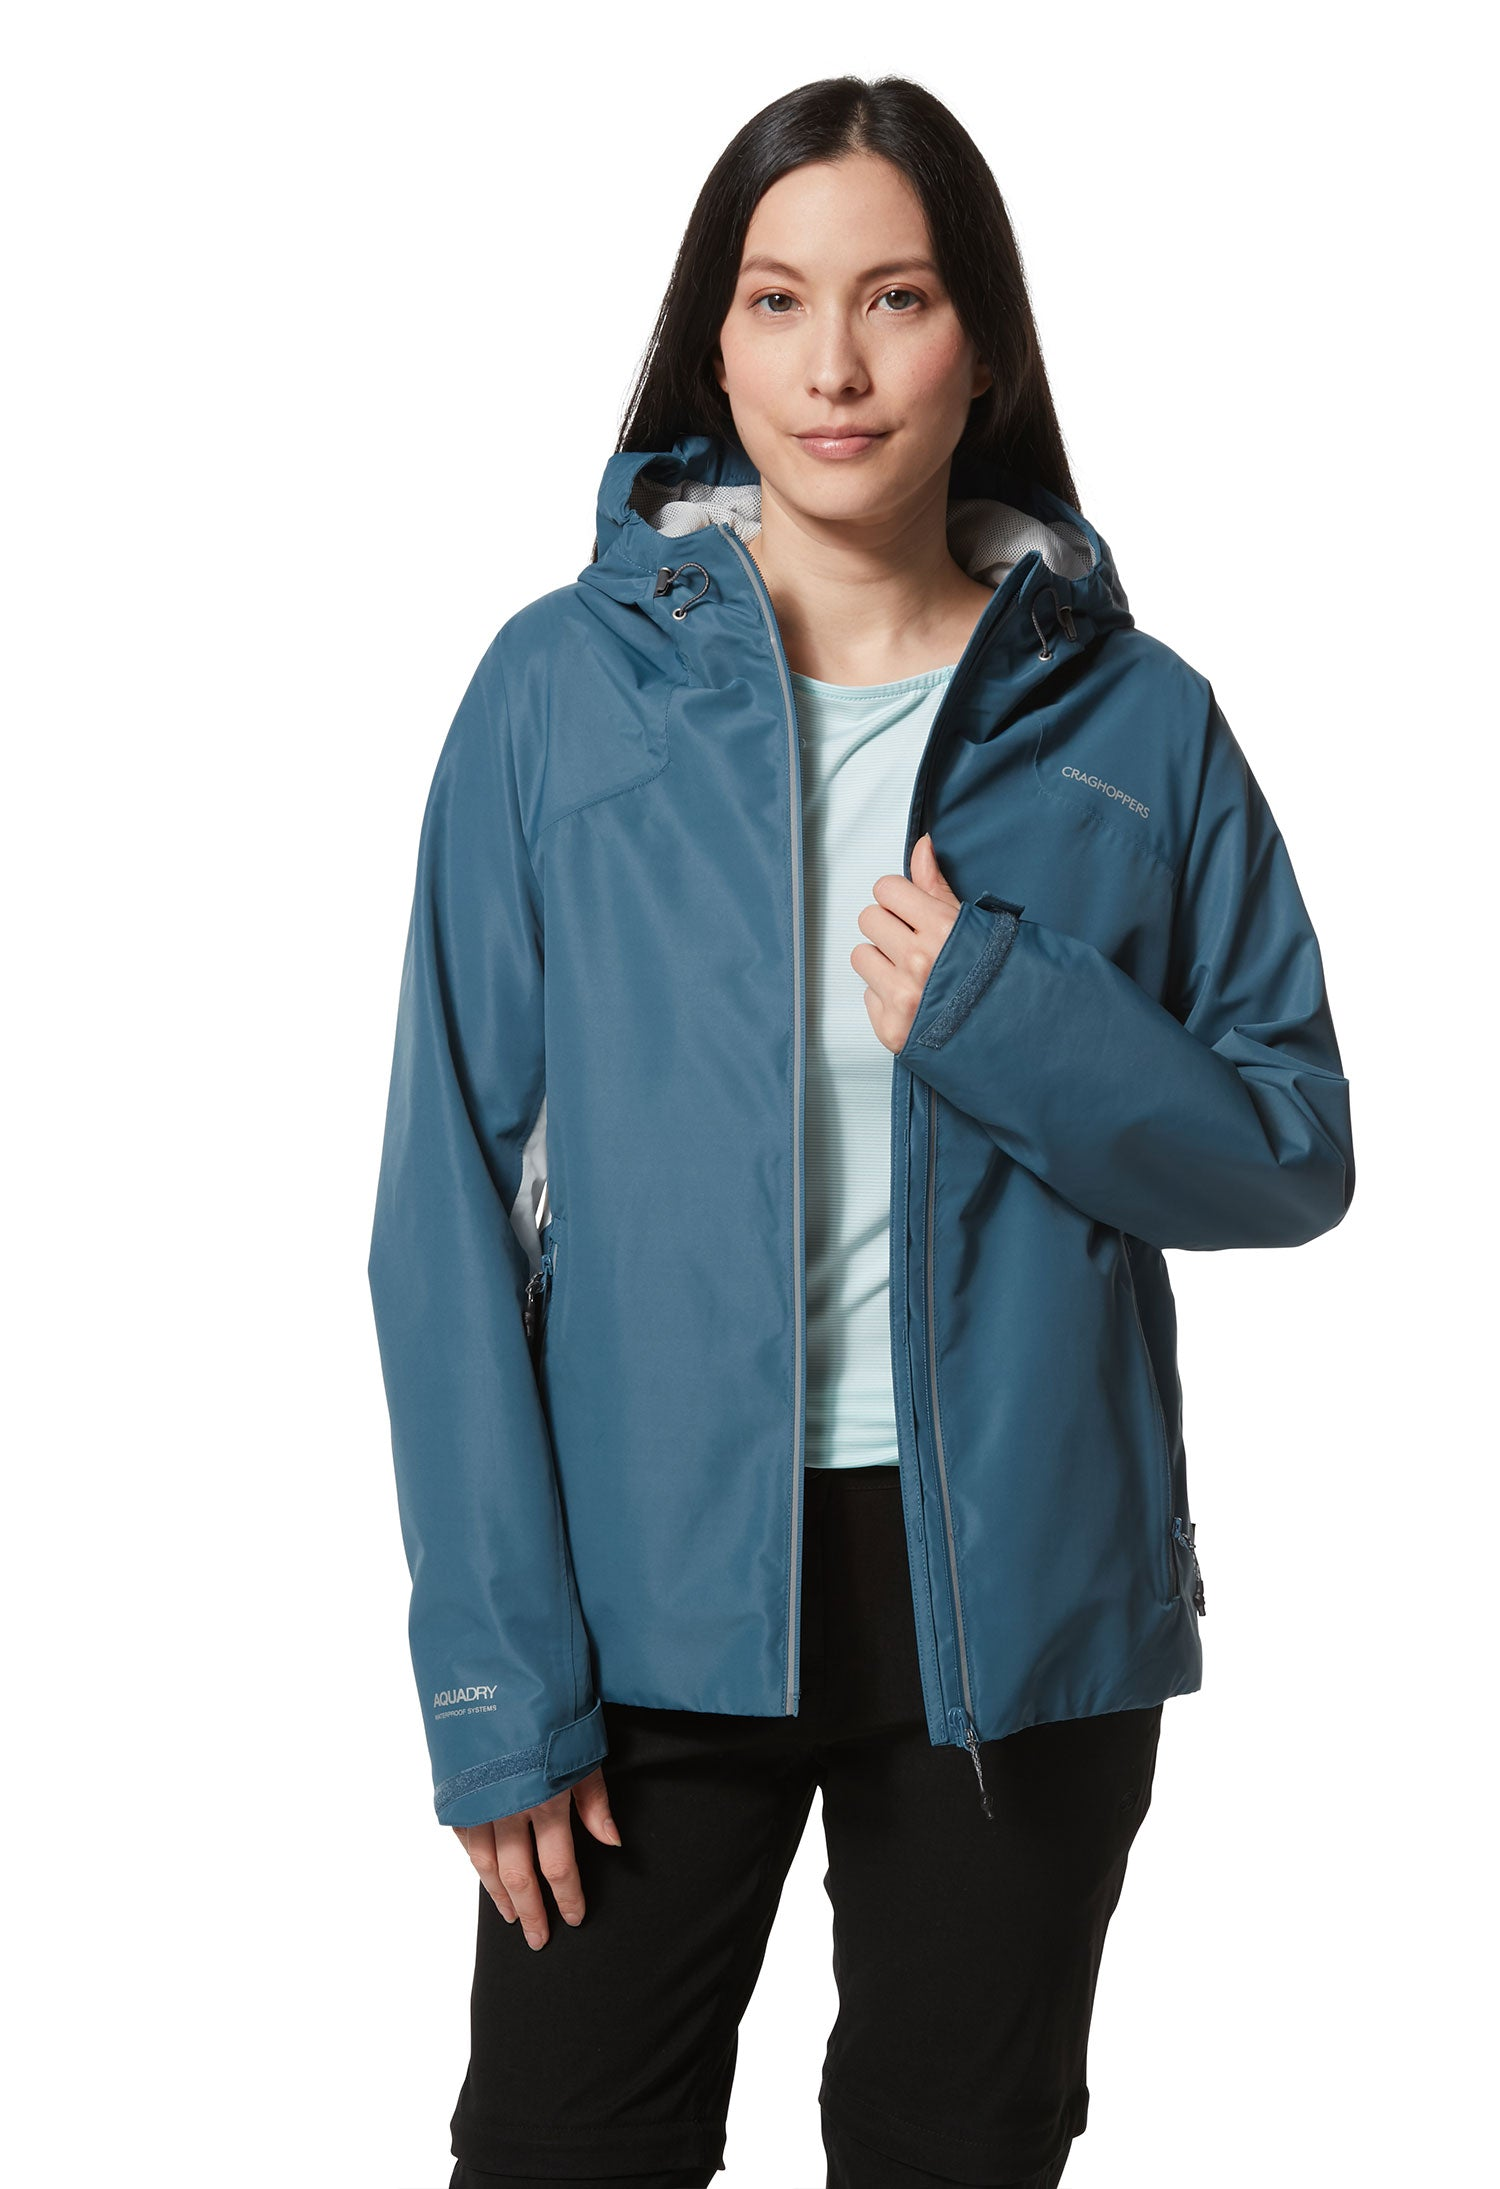 Coat unzipped Horizon Waterproof Women's Jacket by Craghoppers